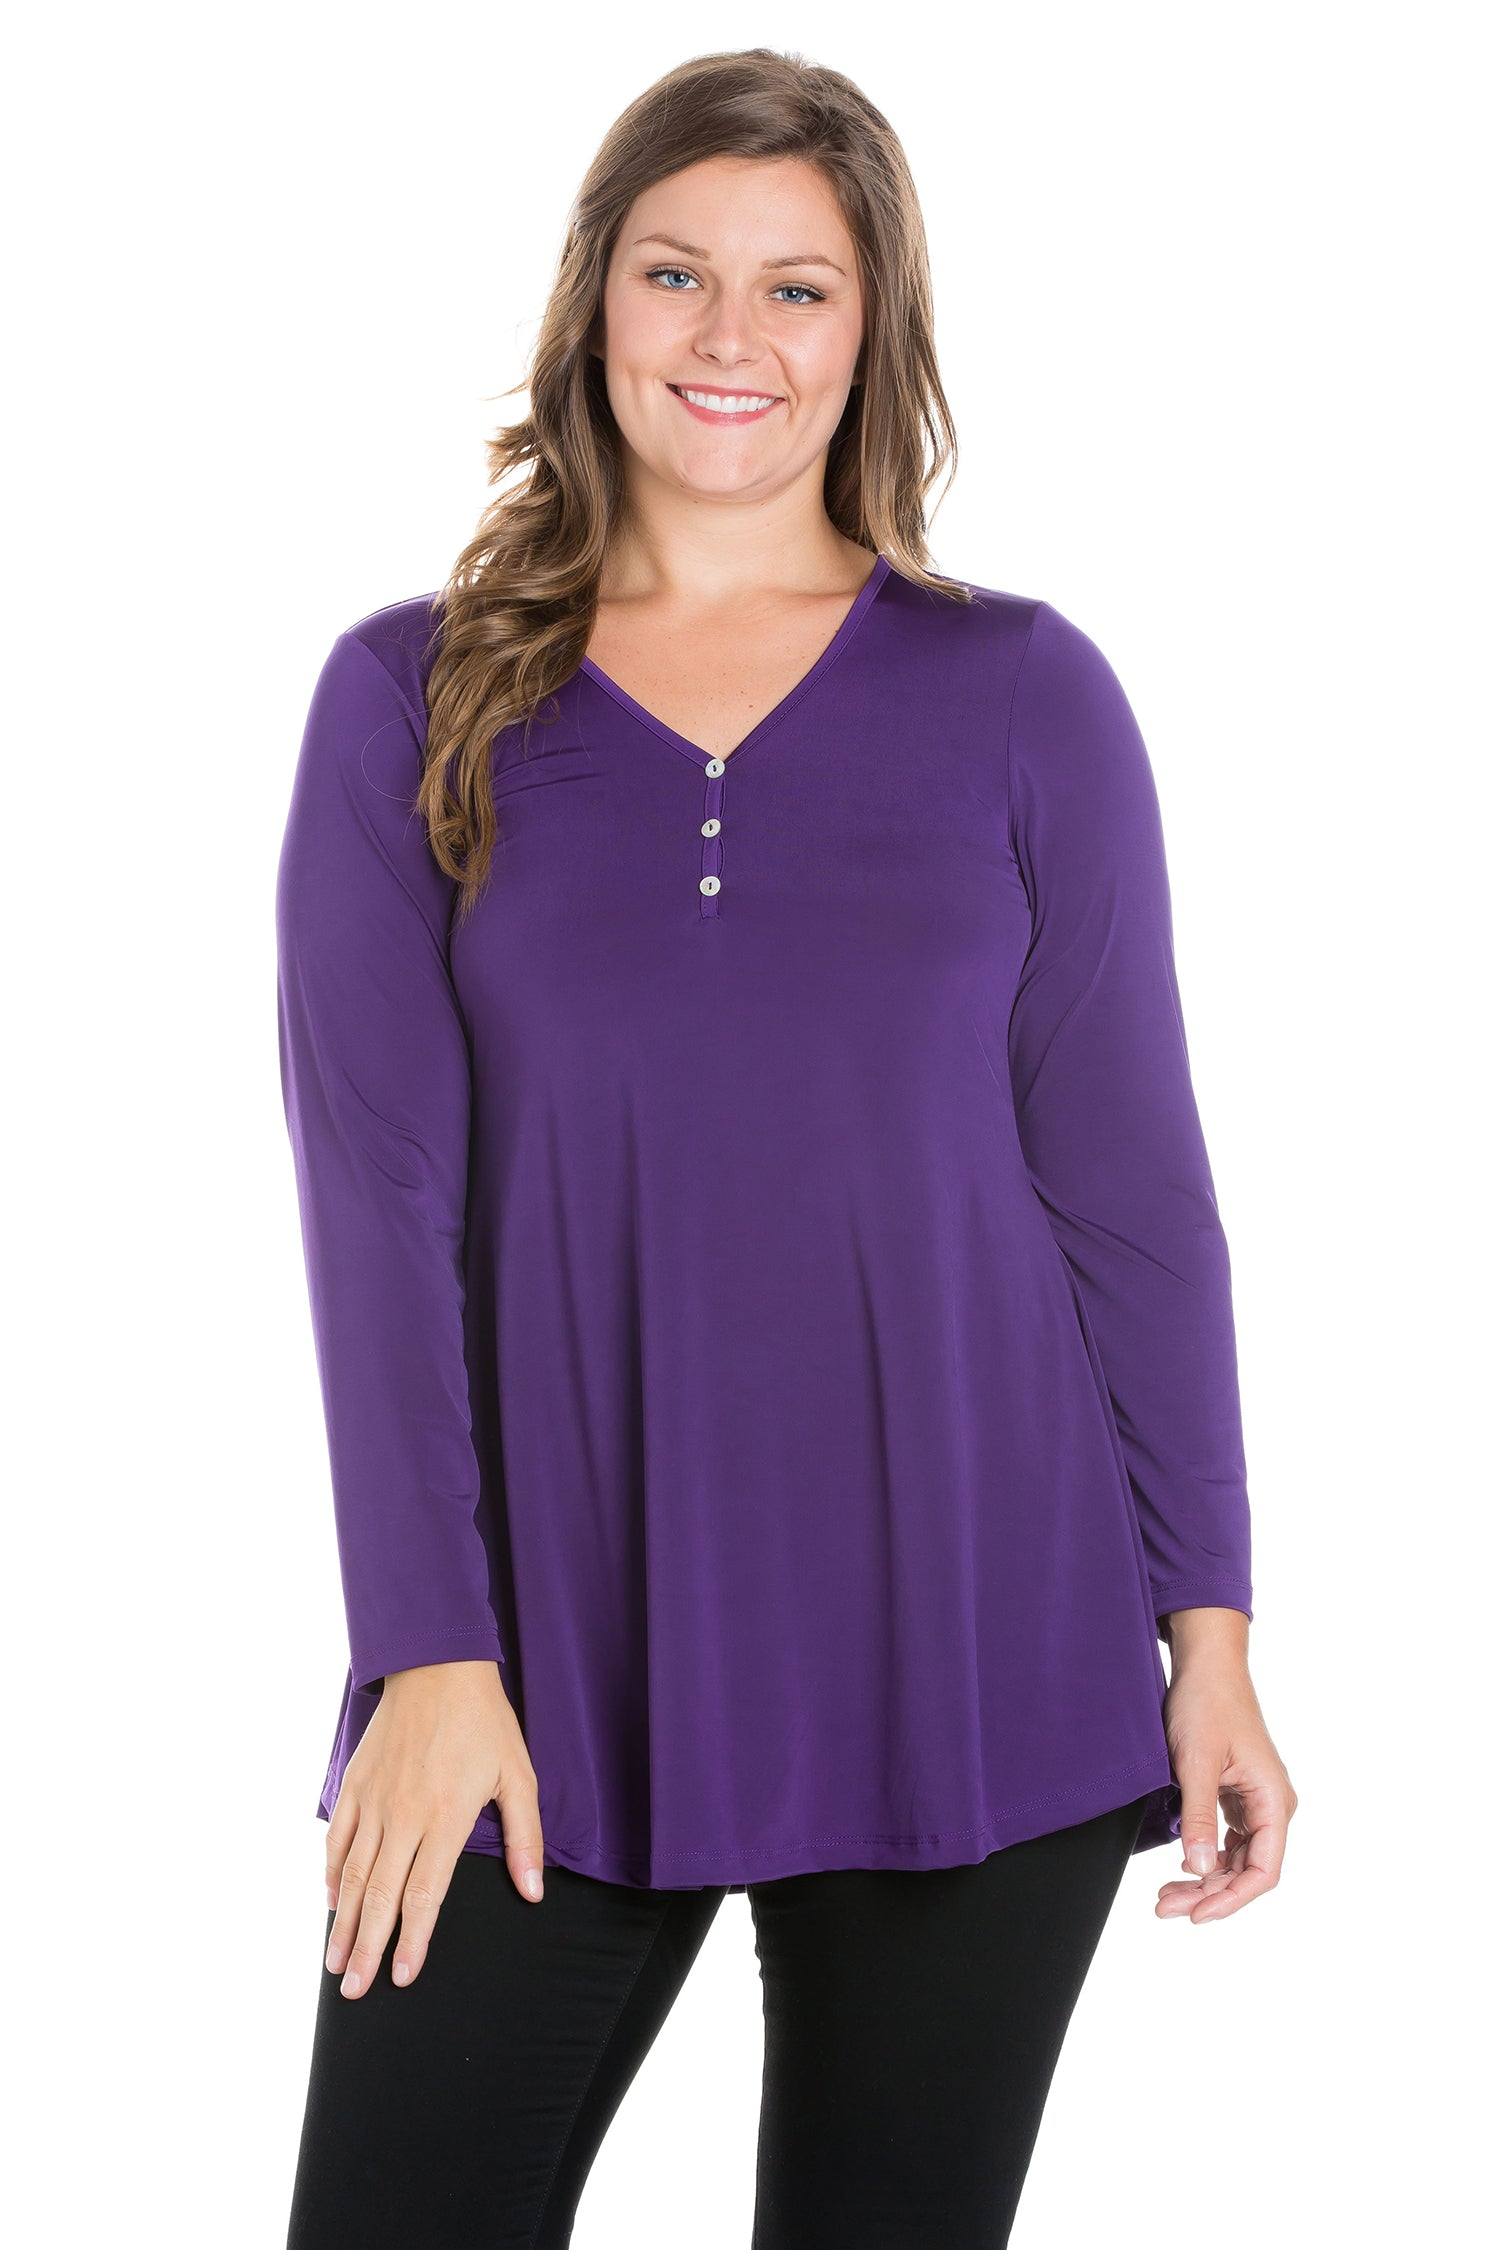 24seven Comfort Apparel Flared Long Sleeve Plus Size Henley Tunic Top-TOPS-24Seven Comfort Apparel-PURPLE-1X-24/7 Comfort Apparel